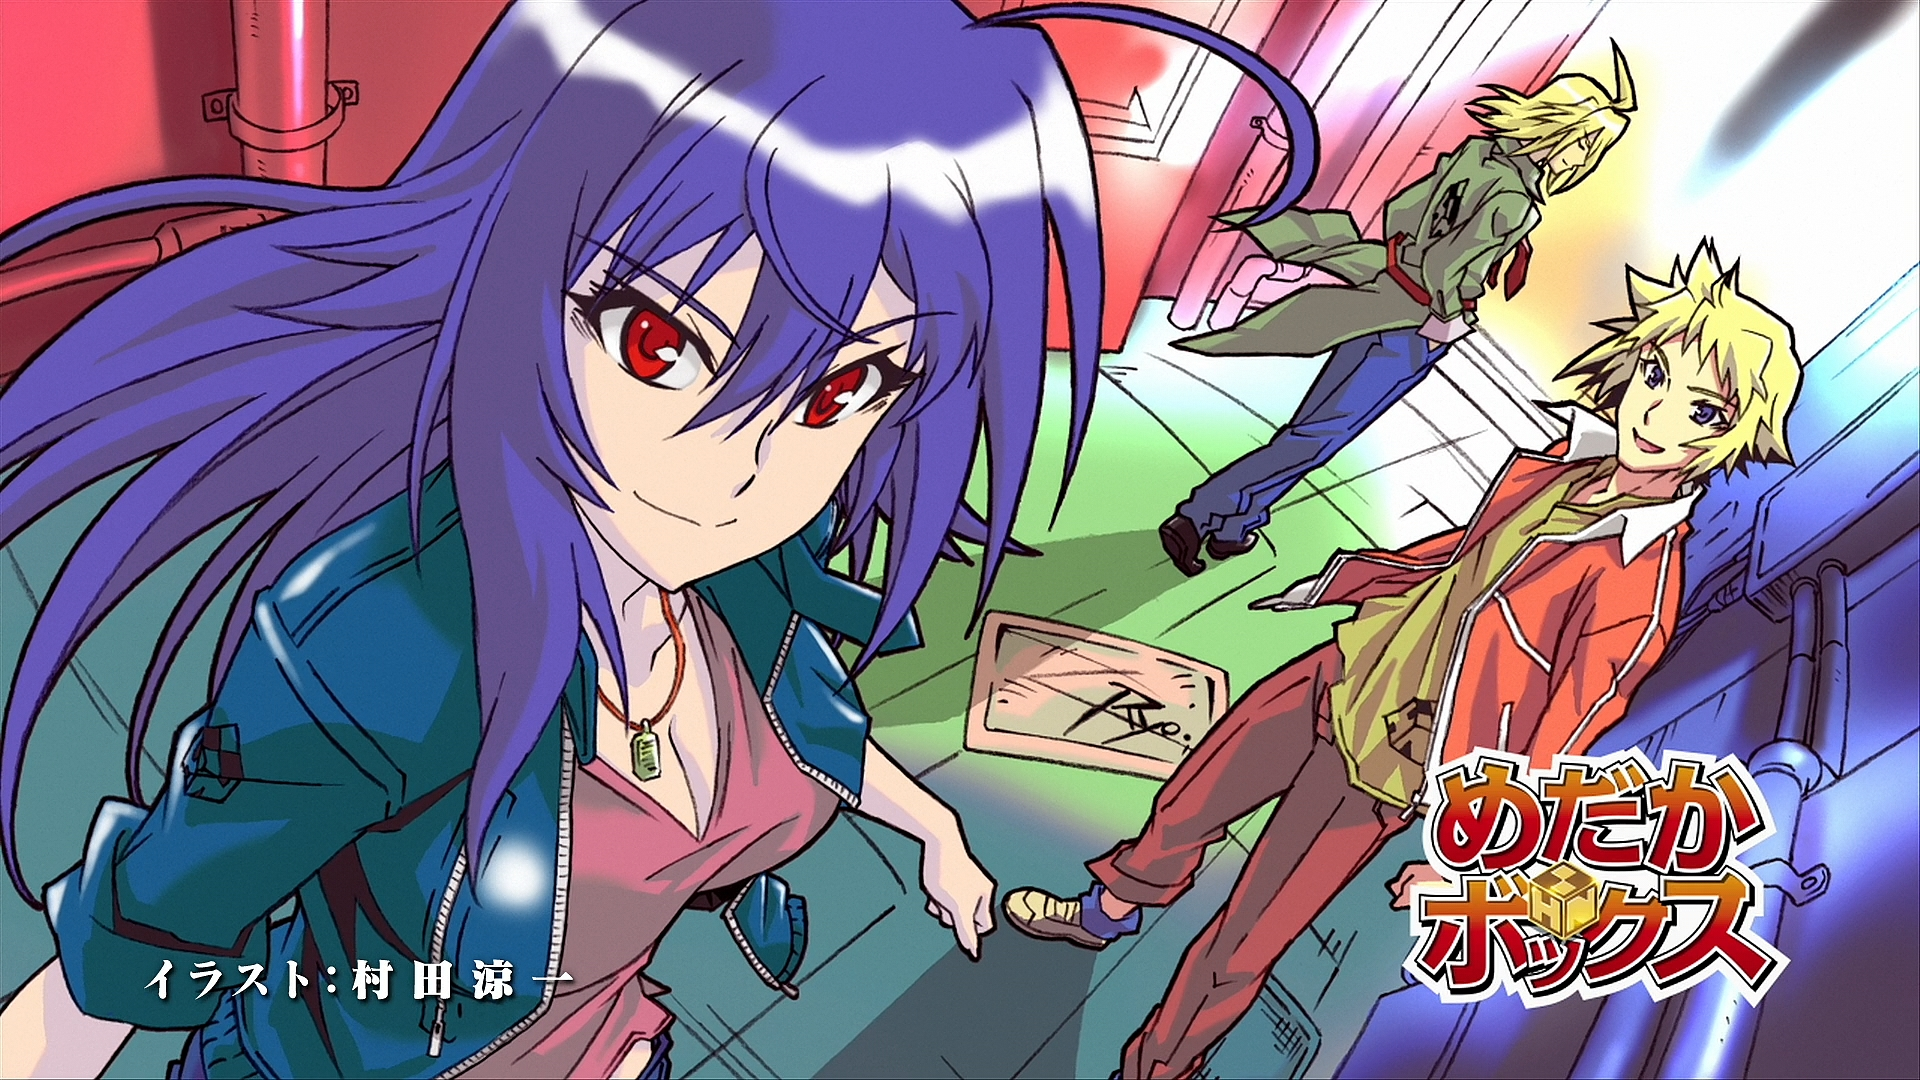 Download Medaka Box Wallpaper Gallery